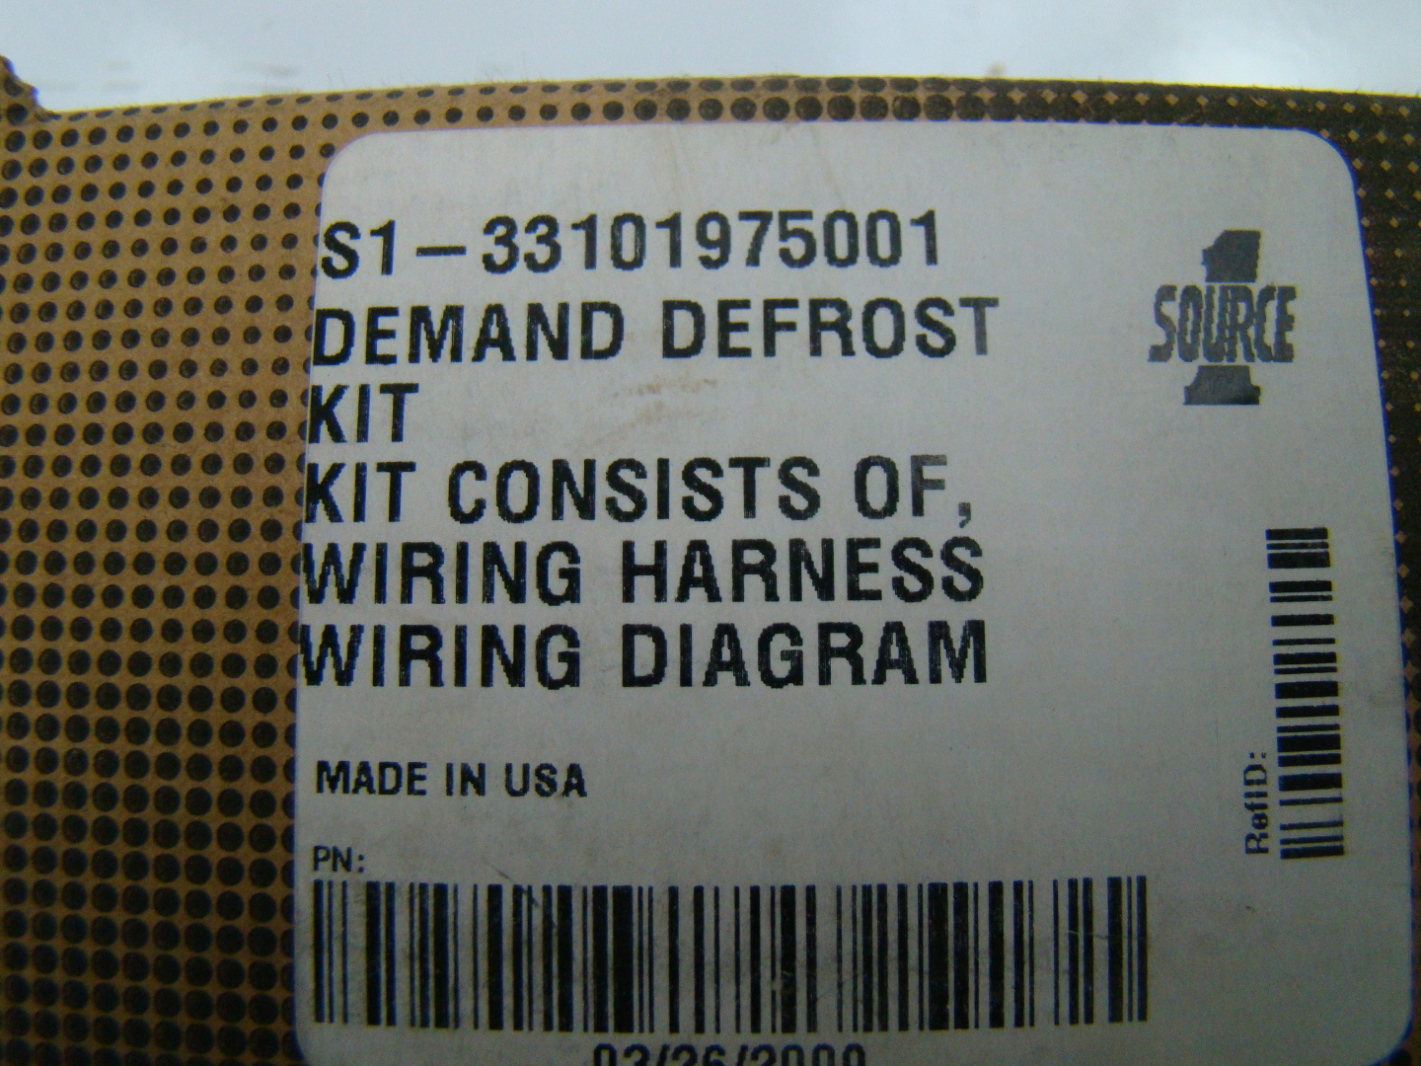 Potter And Brumfield Source 1 22vdc S1 33101975001 Ebay Wiring Diagrams